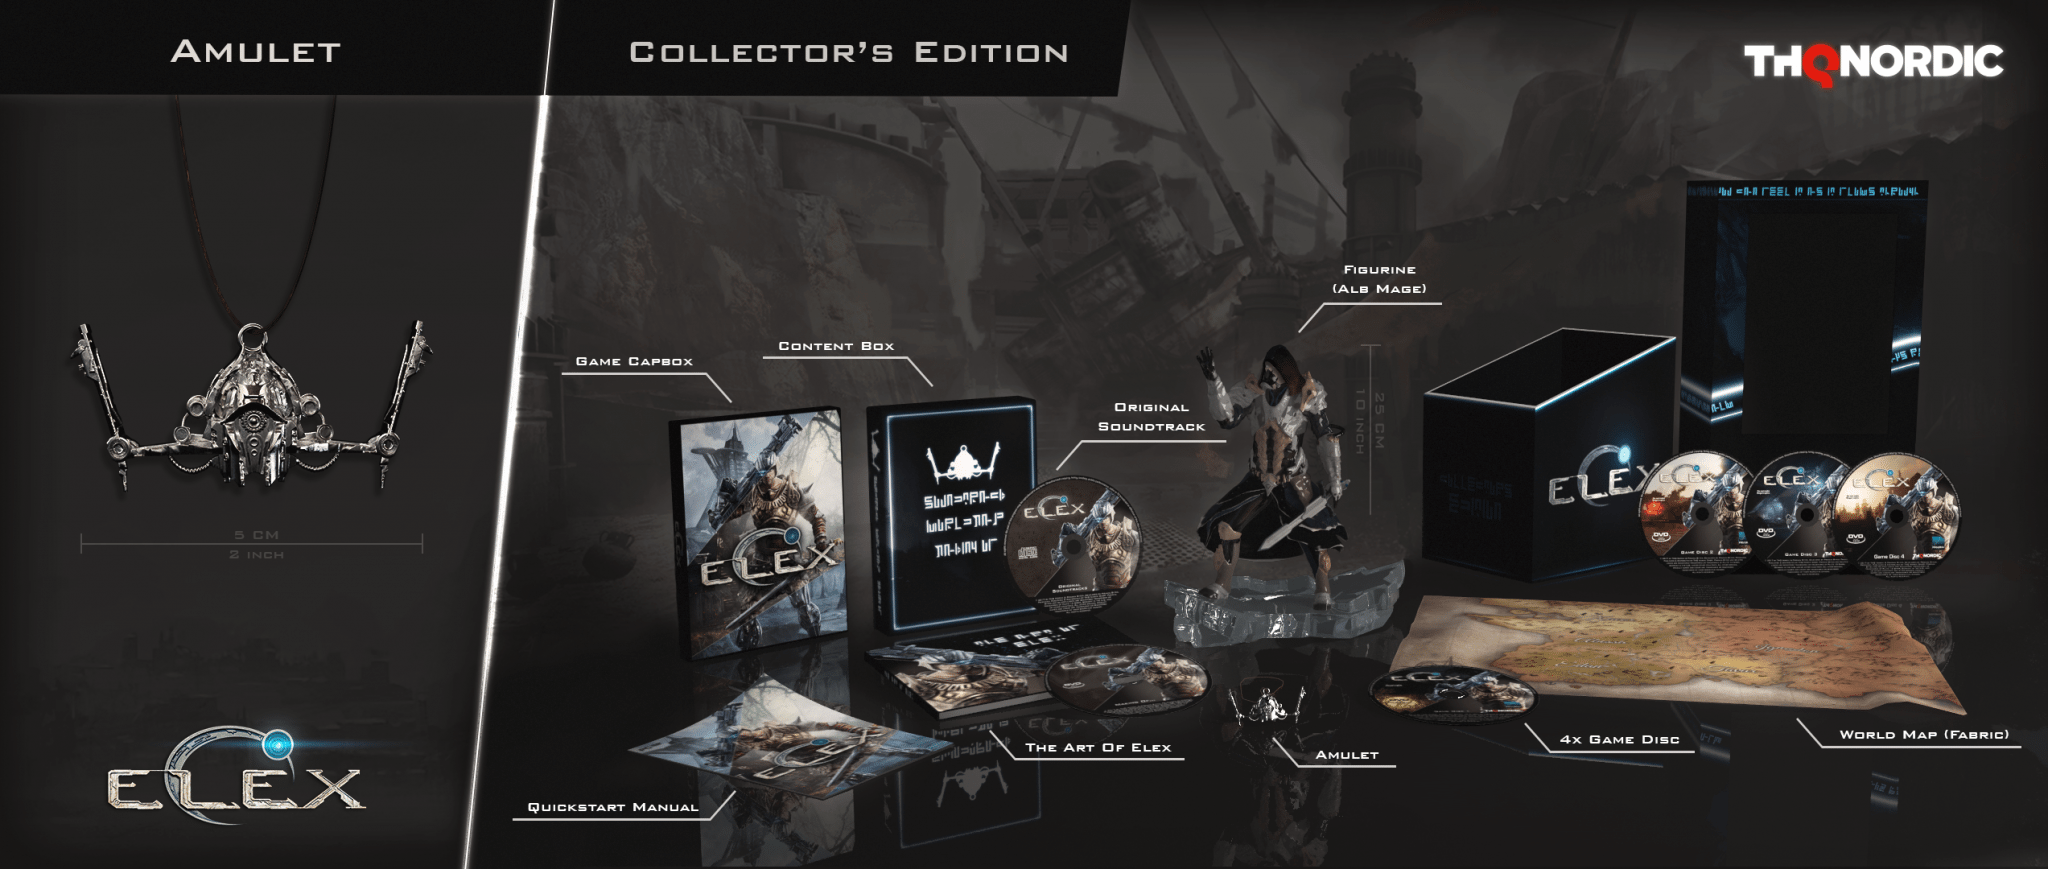 Elex Launch Collector's Edition